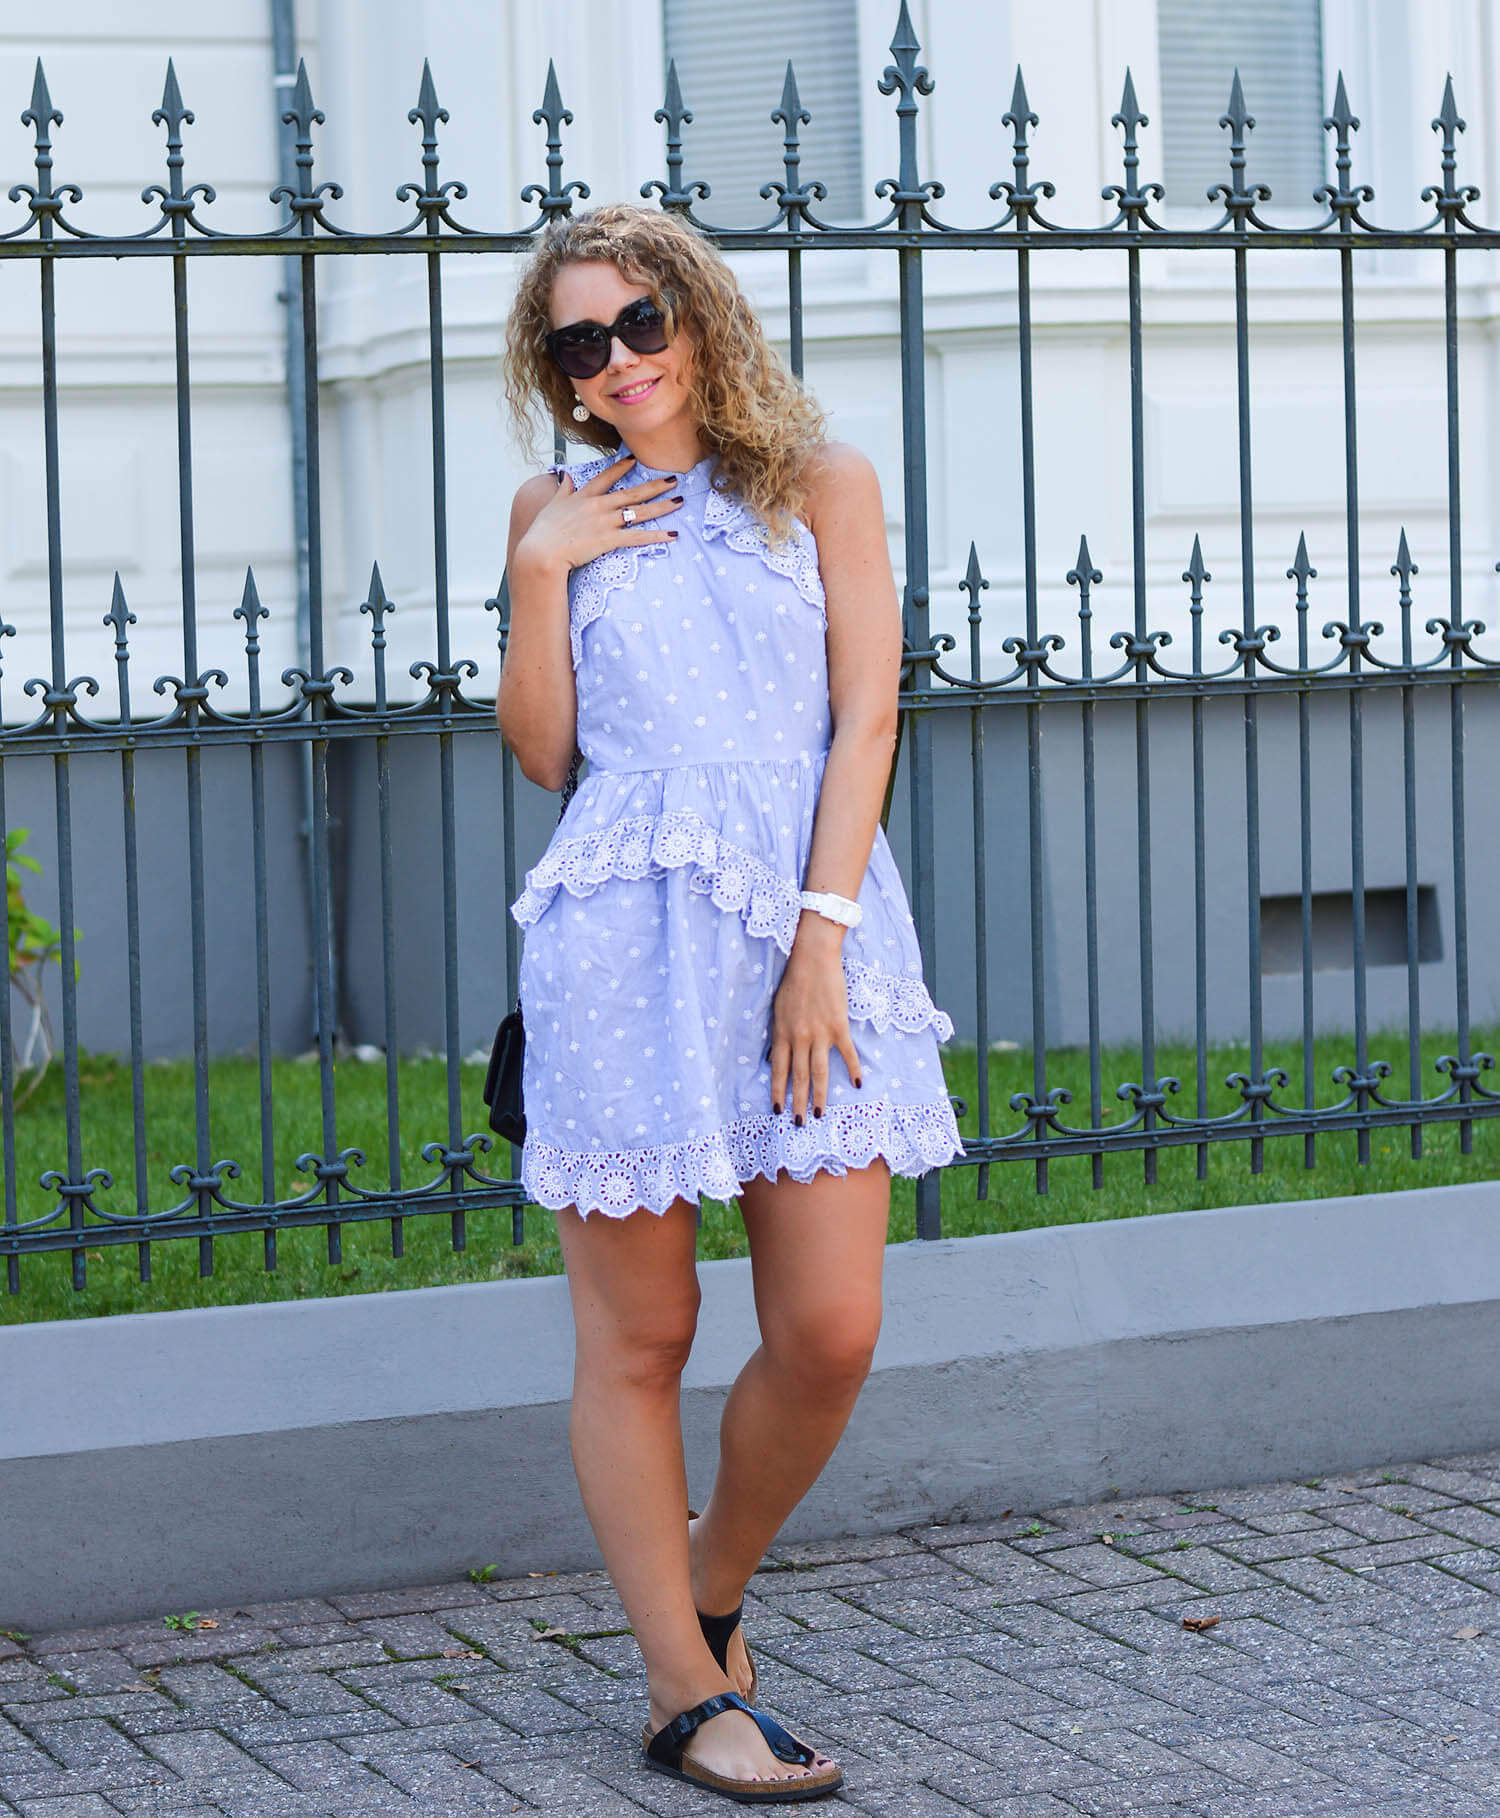 kationette-fashionblog-nrw-Outfit-H&M-trend-dress-broderie-anglaise-volants